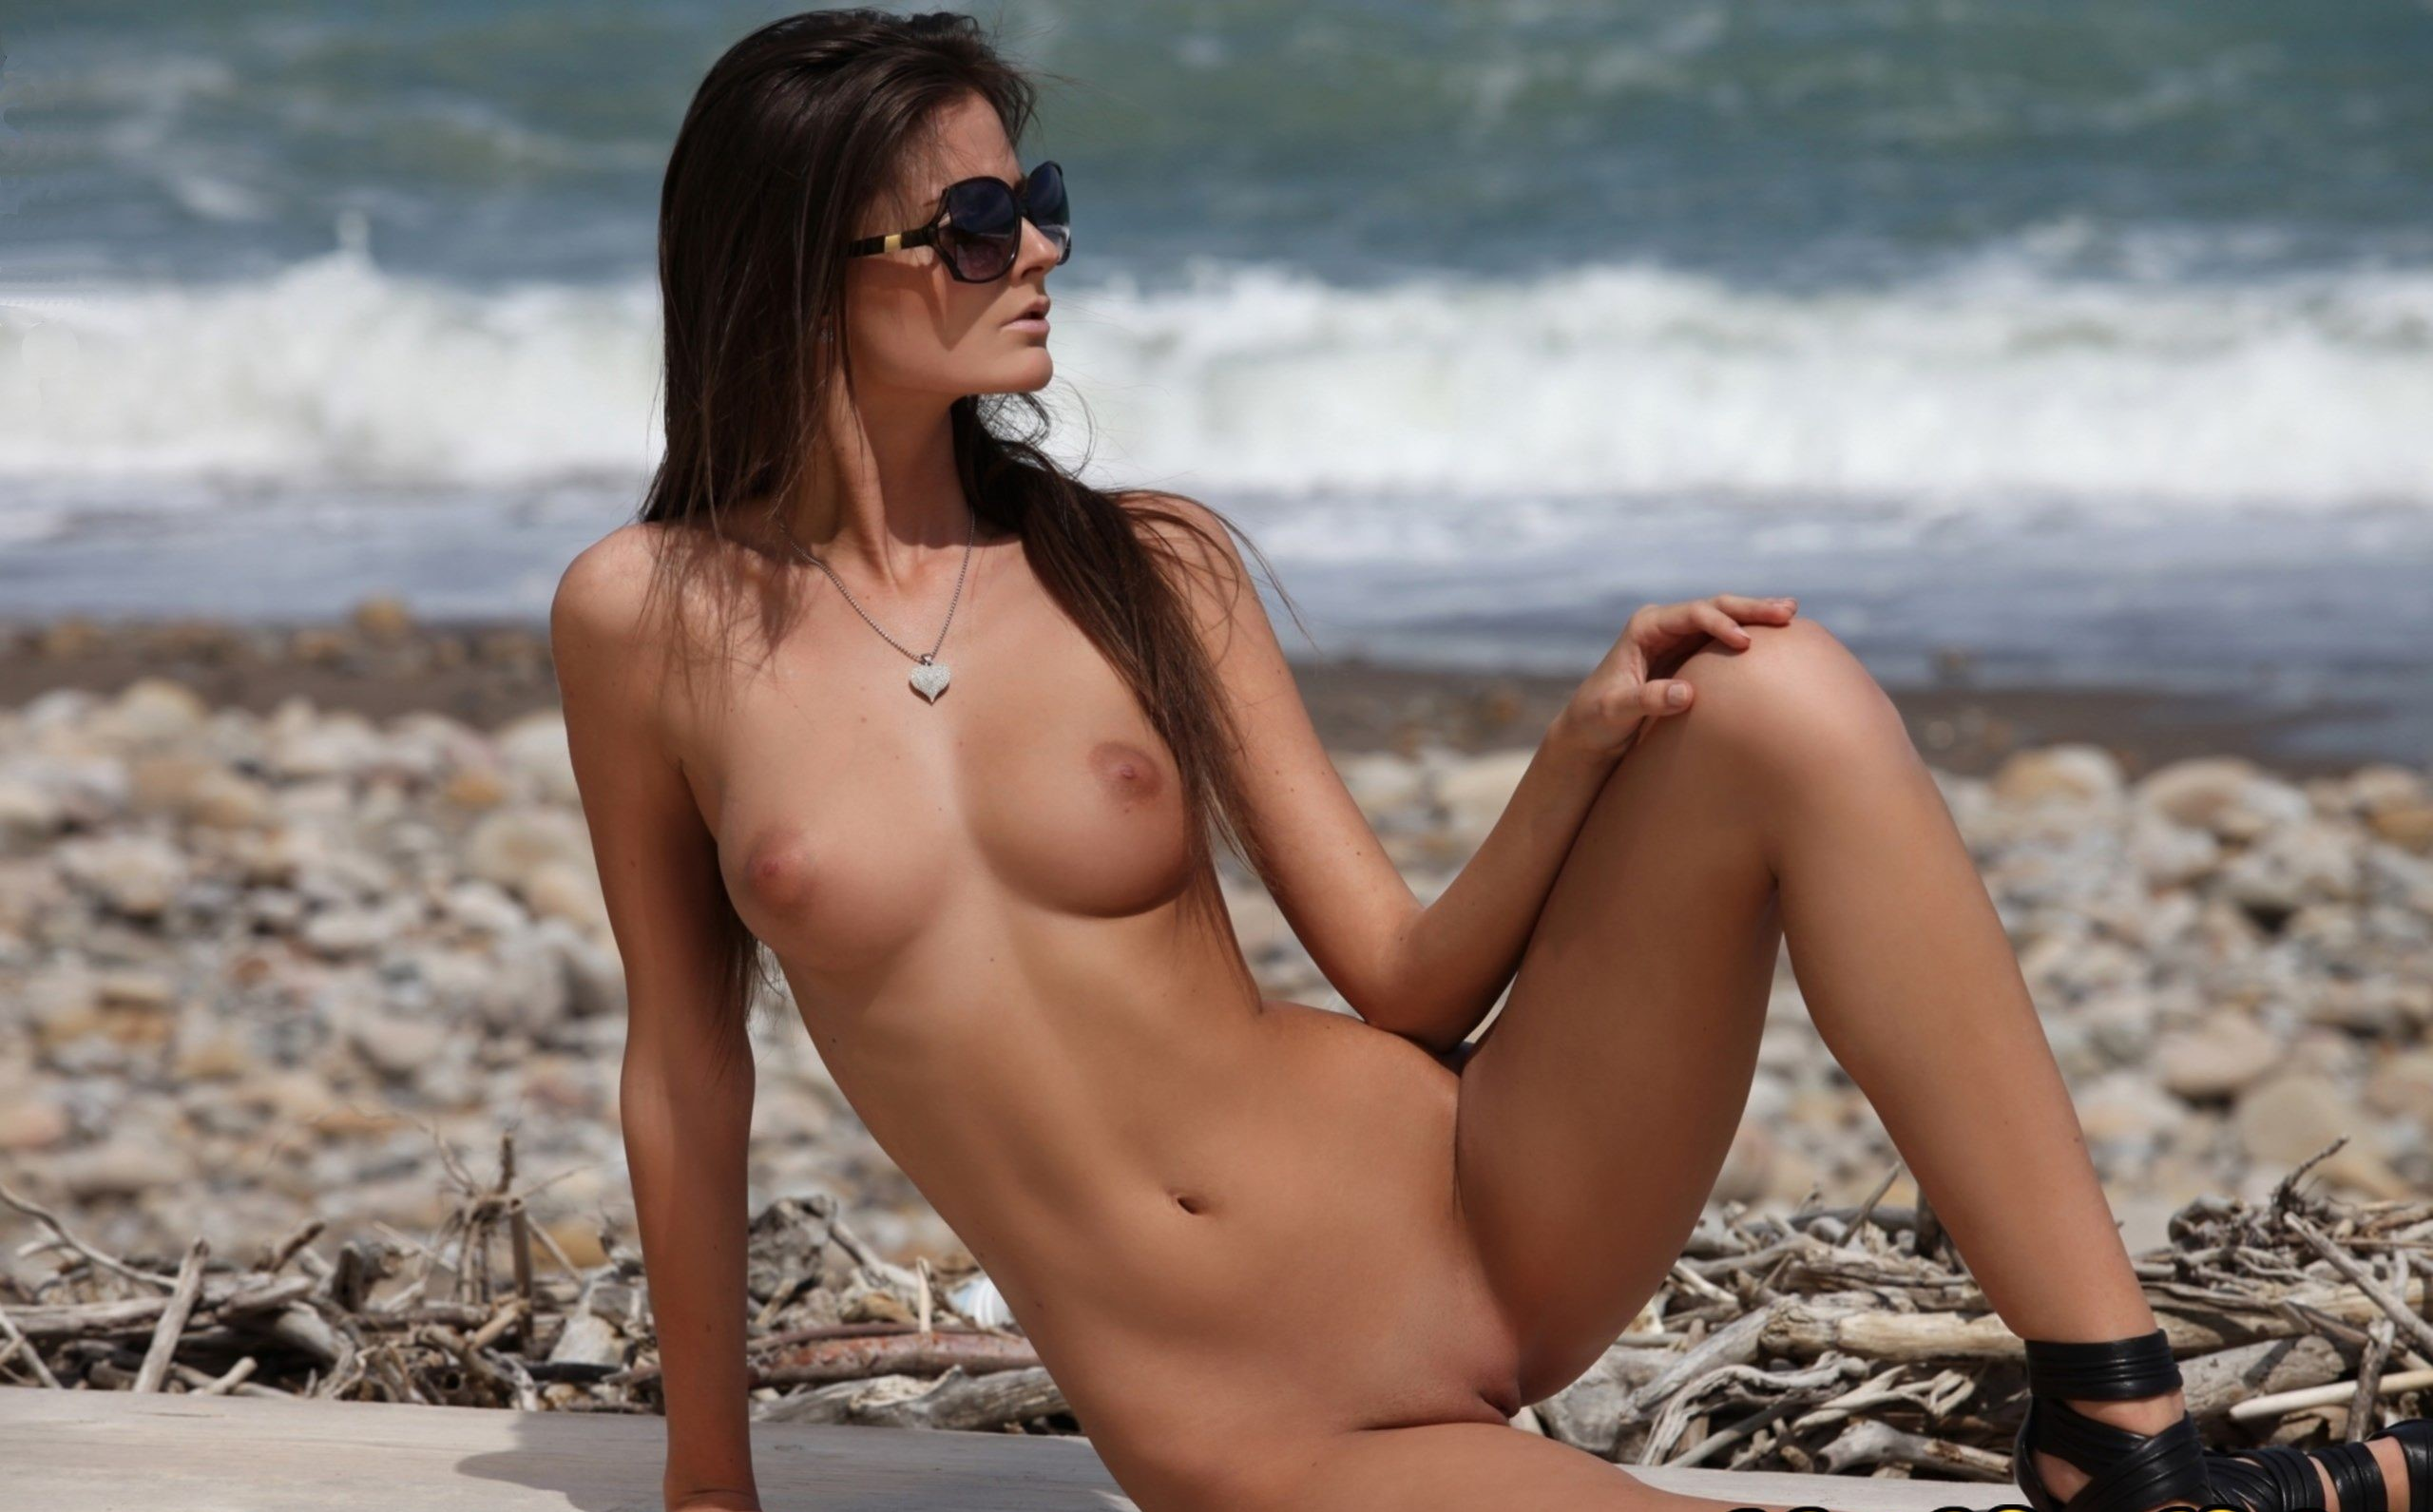 Nude girls on google earth high quality 2